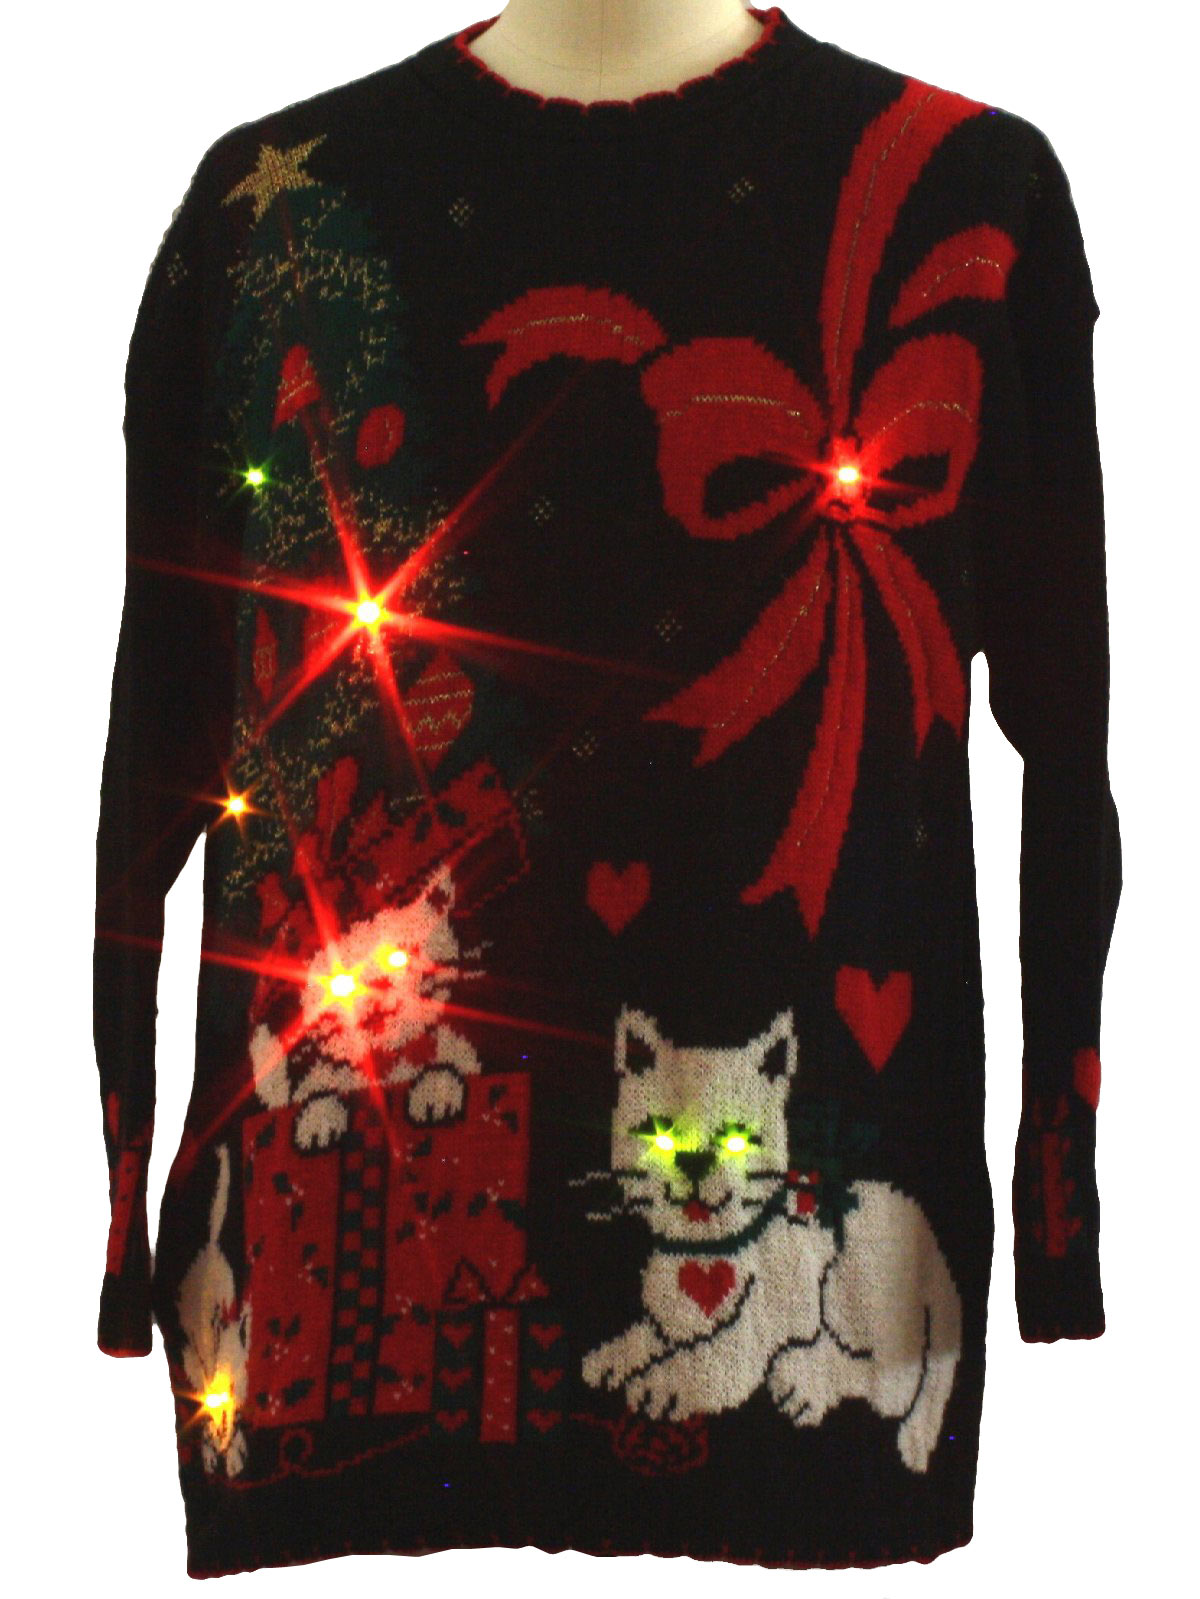 Vintage 1980s Cat Tastic Lightup Ugly Christmas Sweater 80s